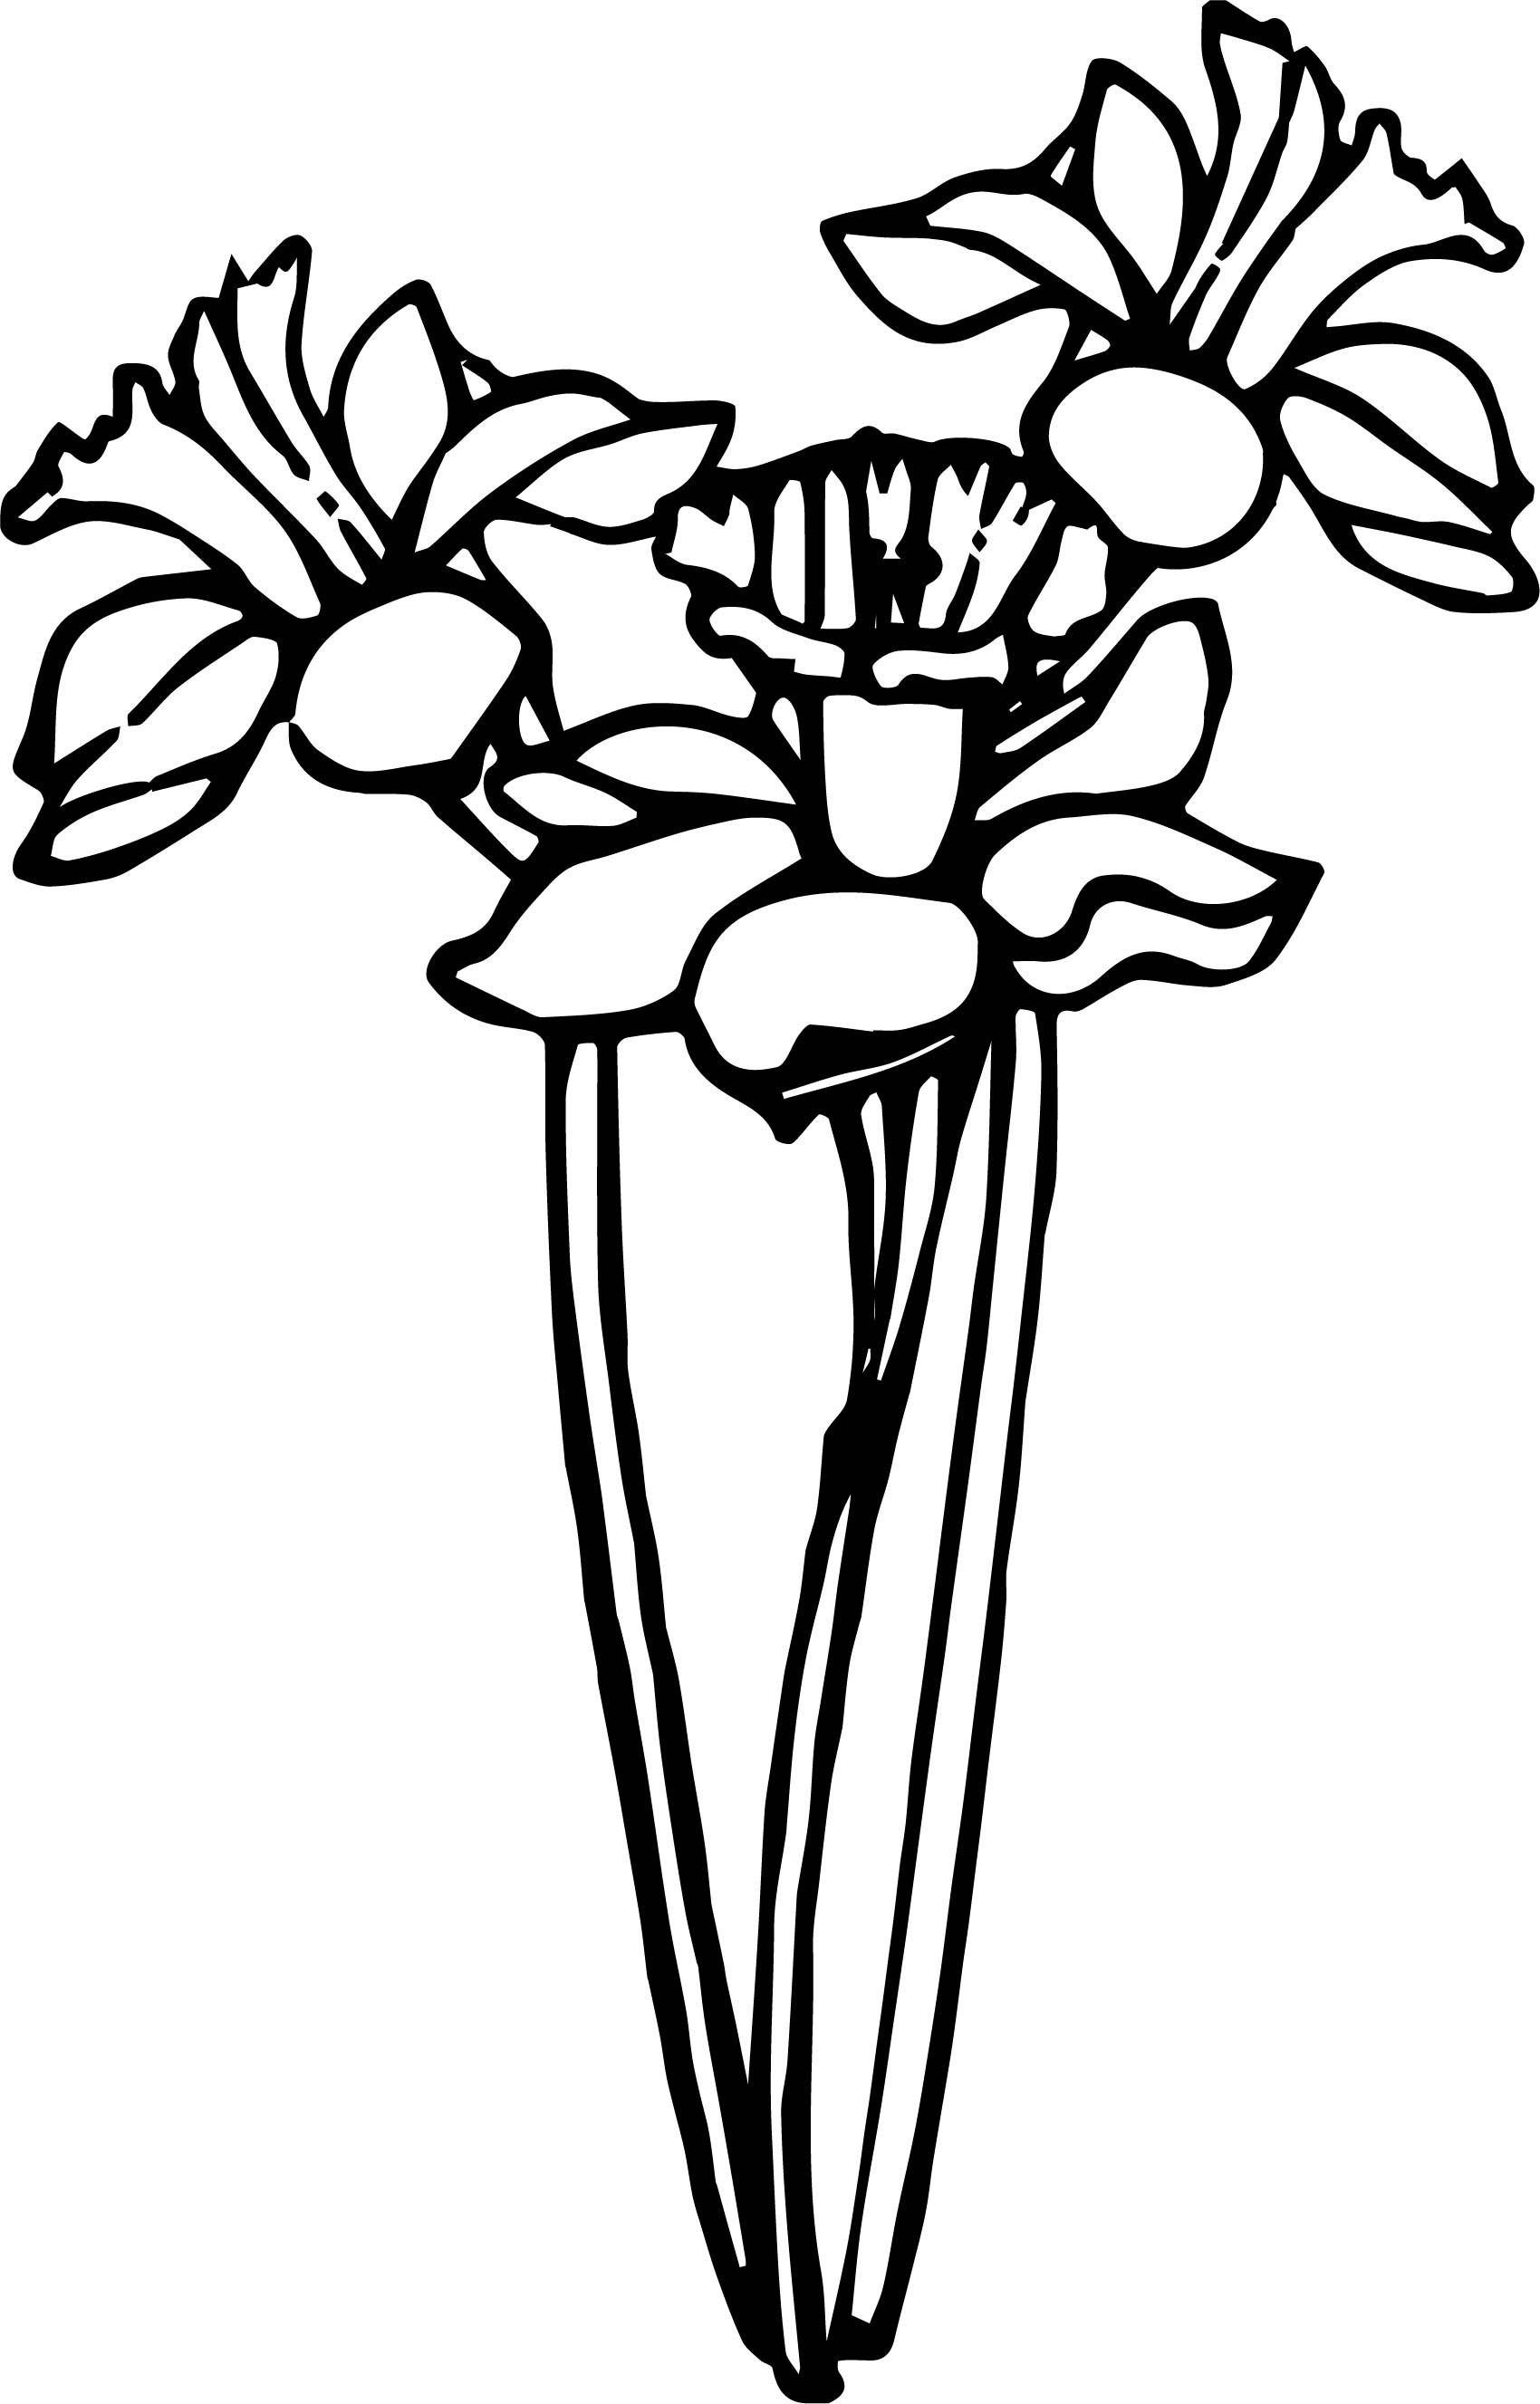 Any Flower Coloring Page